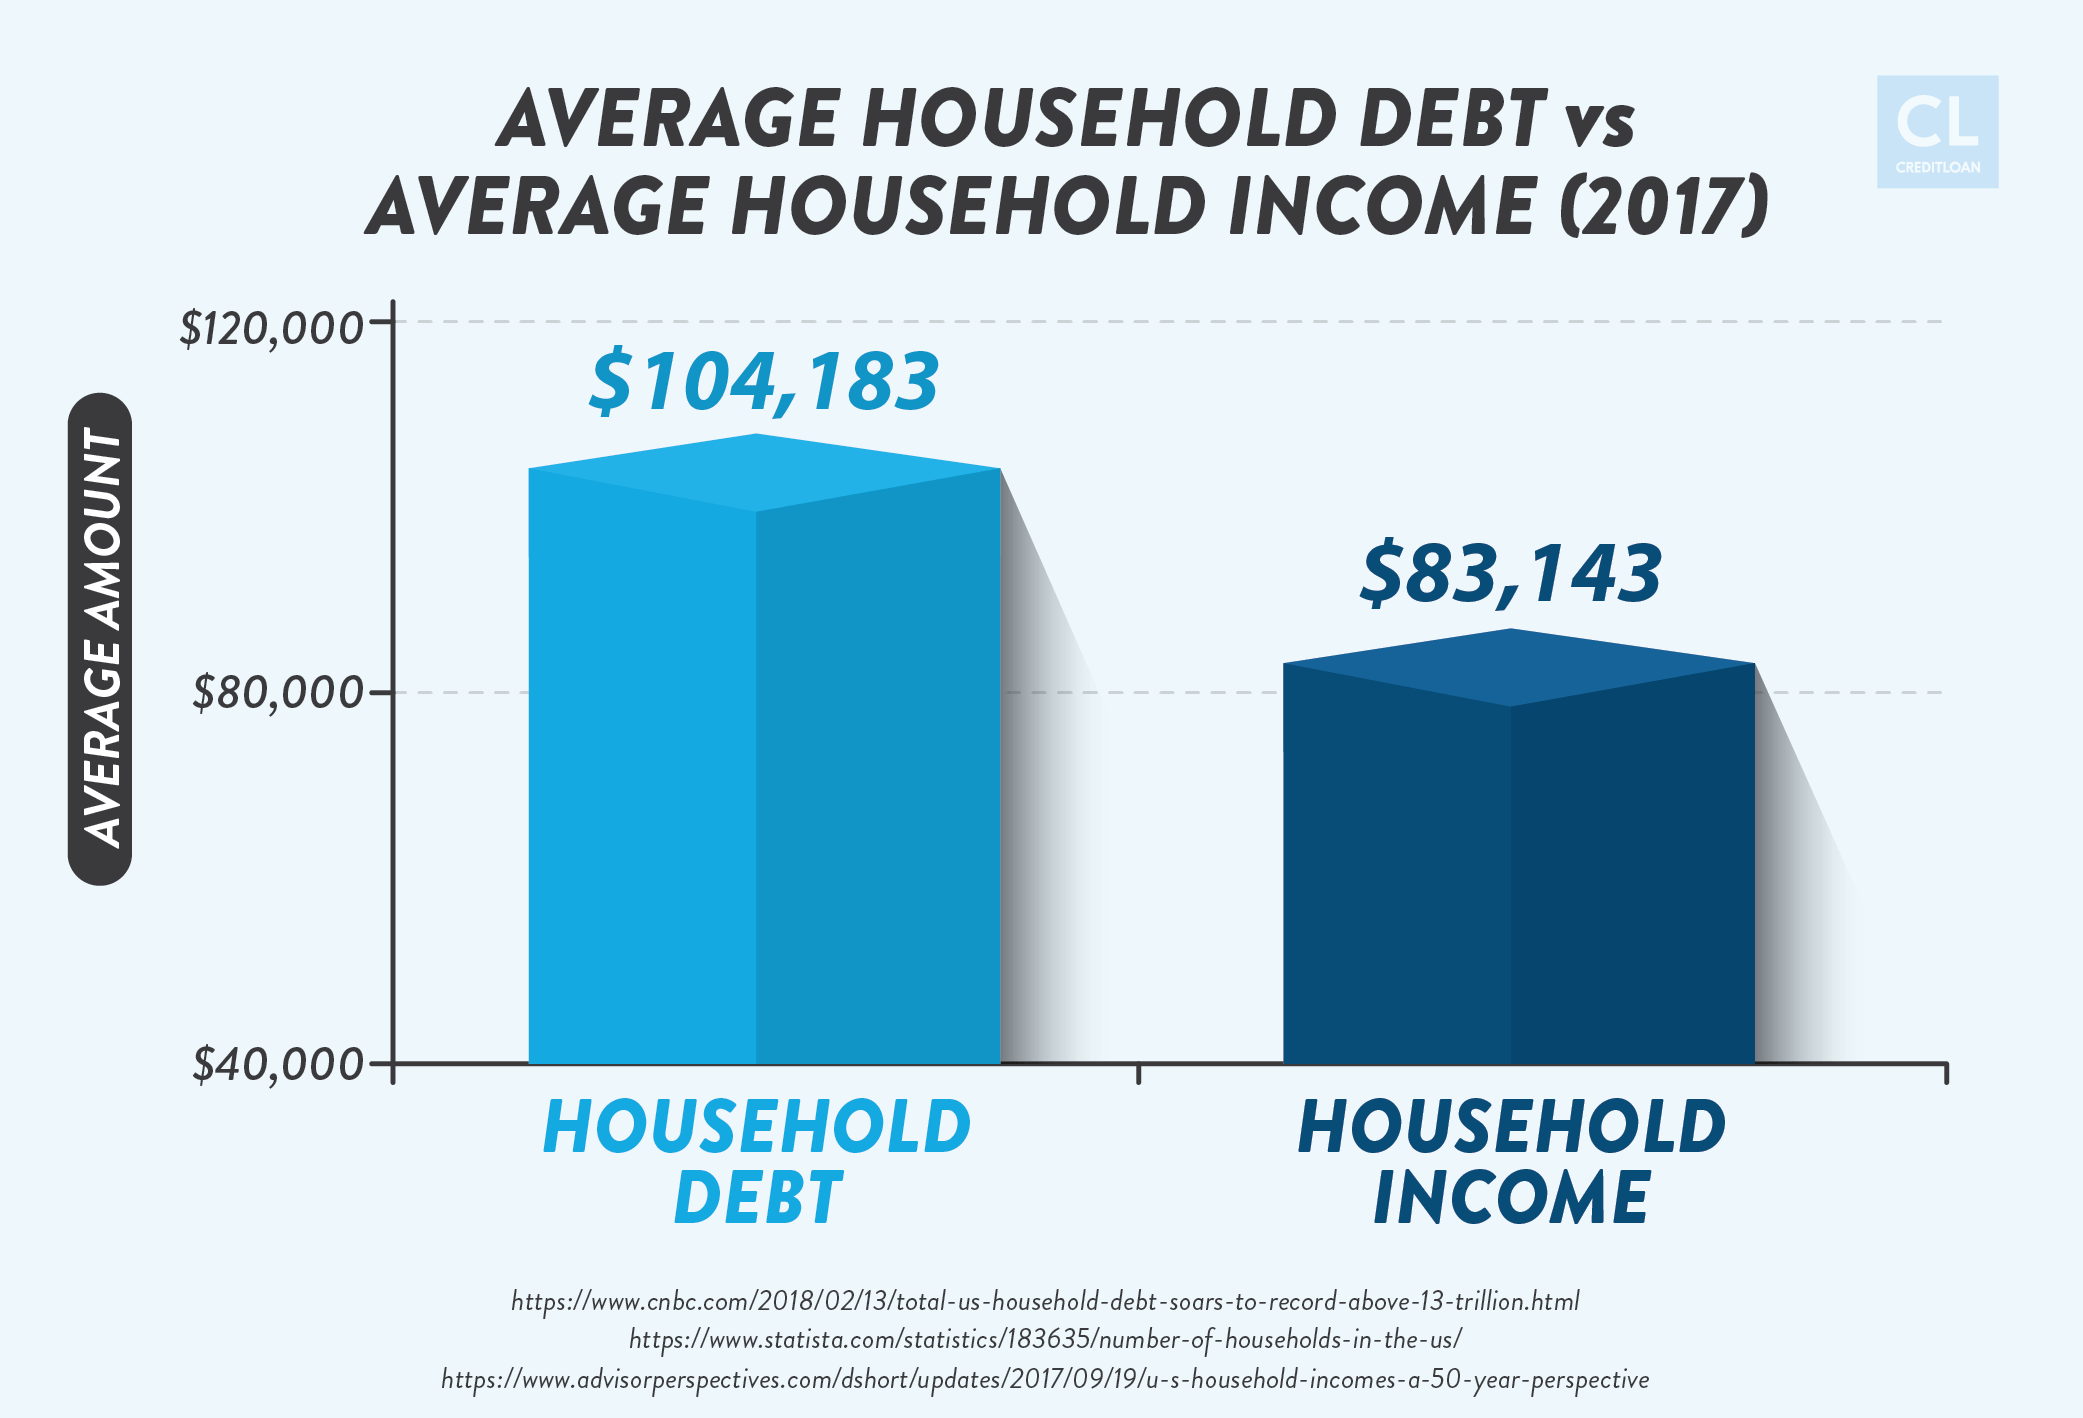 2017 Average Household Debt vs Average Household Income